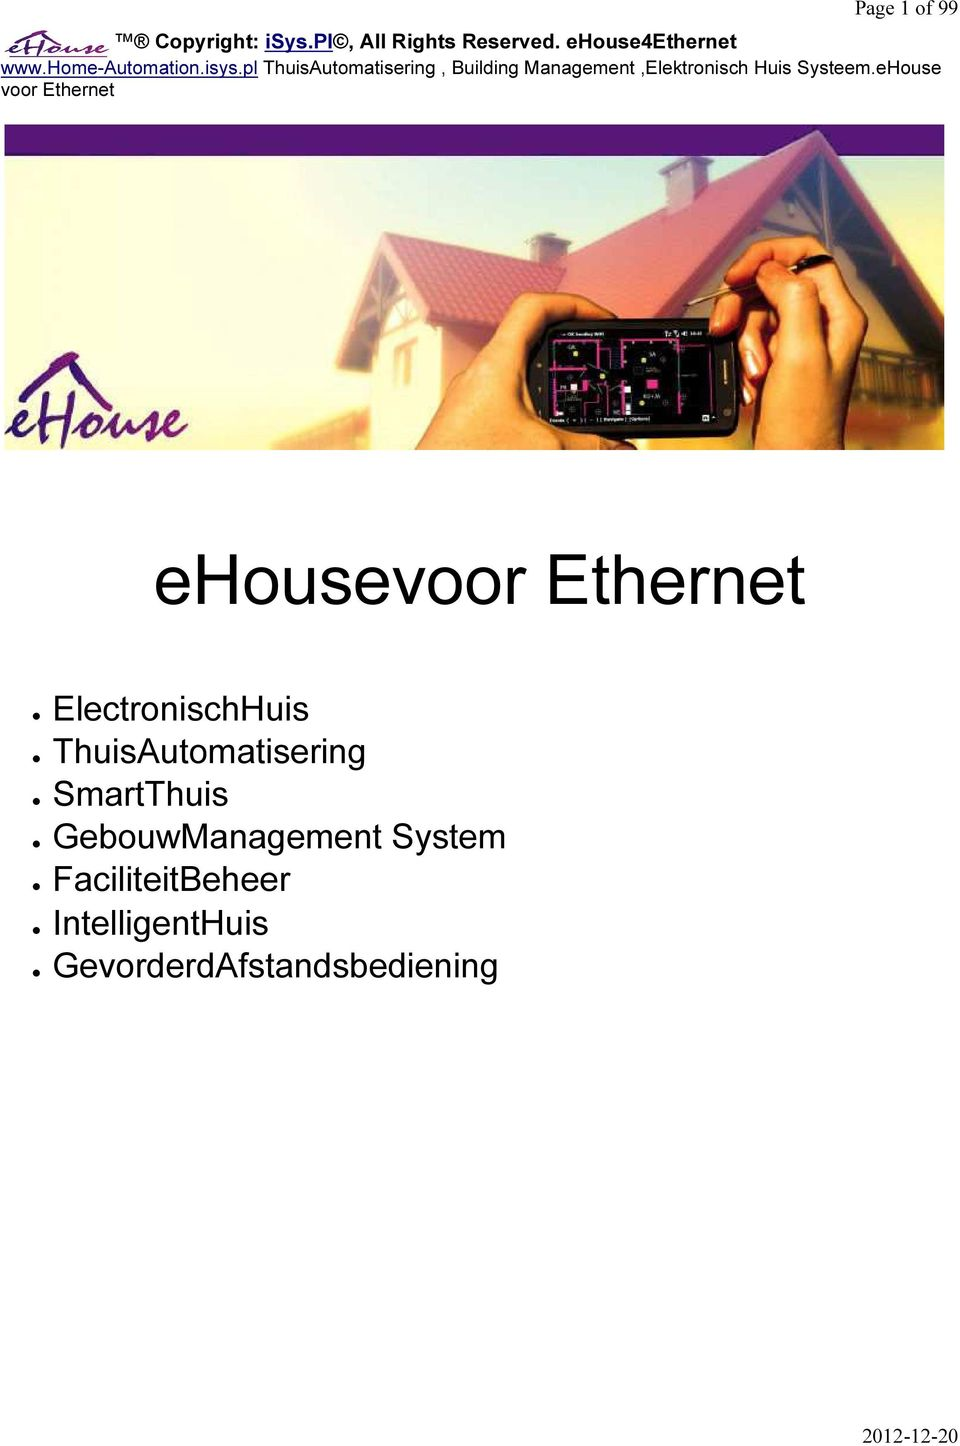 pl ThuisAutomatisering, Building Management,Elektronisch Huis Systeem.